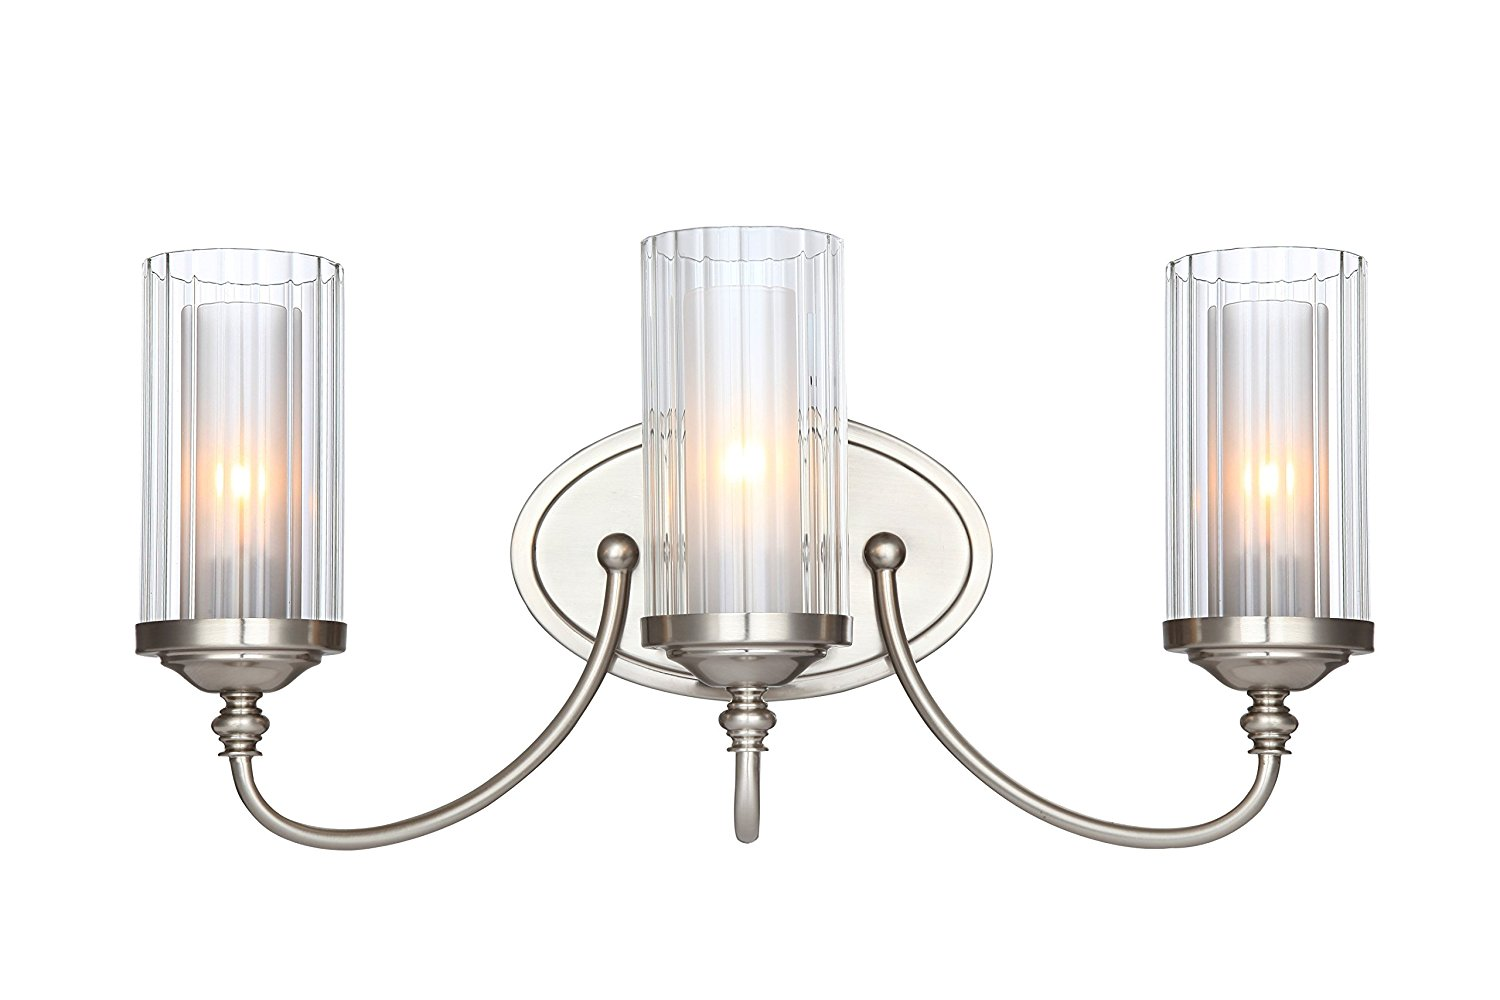 Hardware House LLC 20-9557 # Lexington Series 3-Light Wall and Bath Fixture Satin Nickel Comes with Clear Ribbed Glass and - Frosted Glass Globes